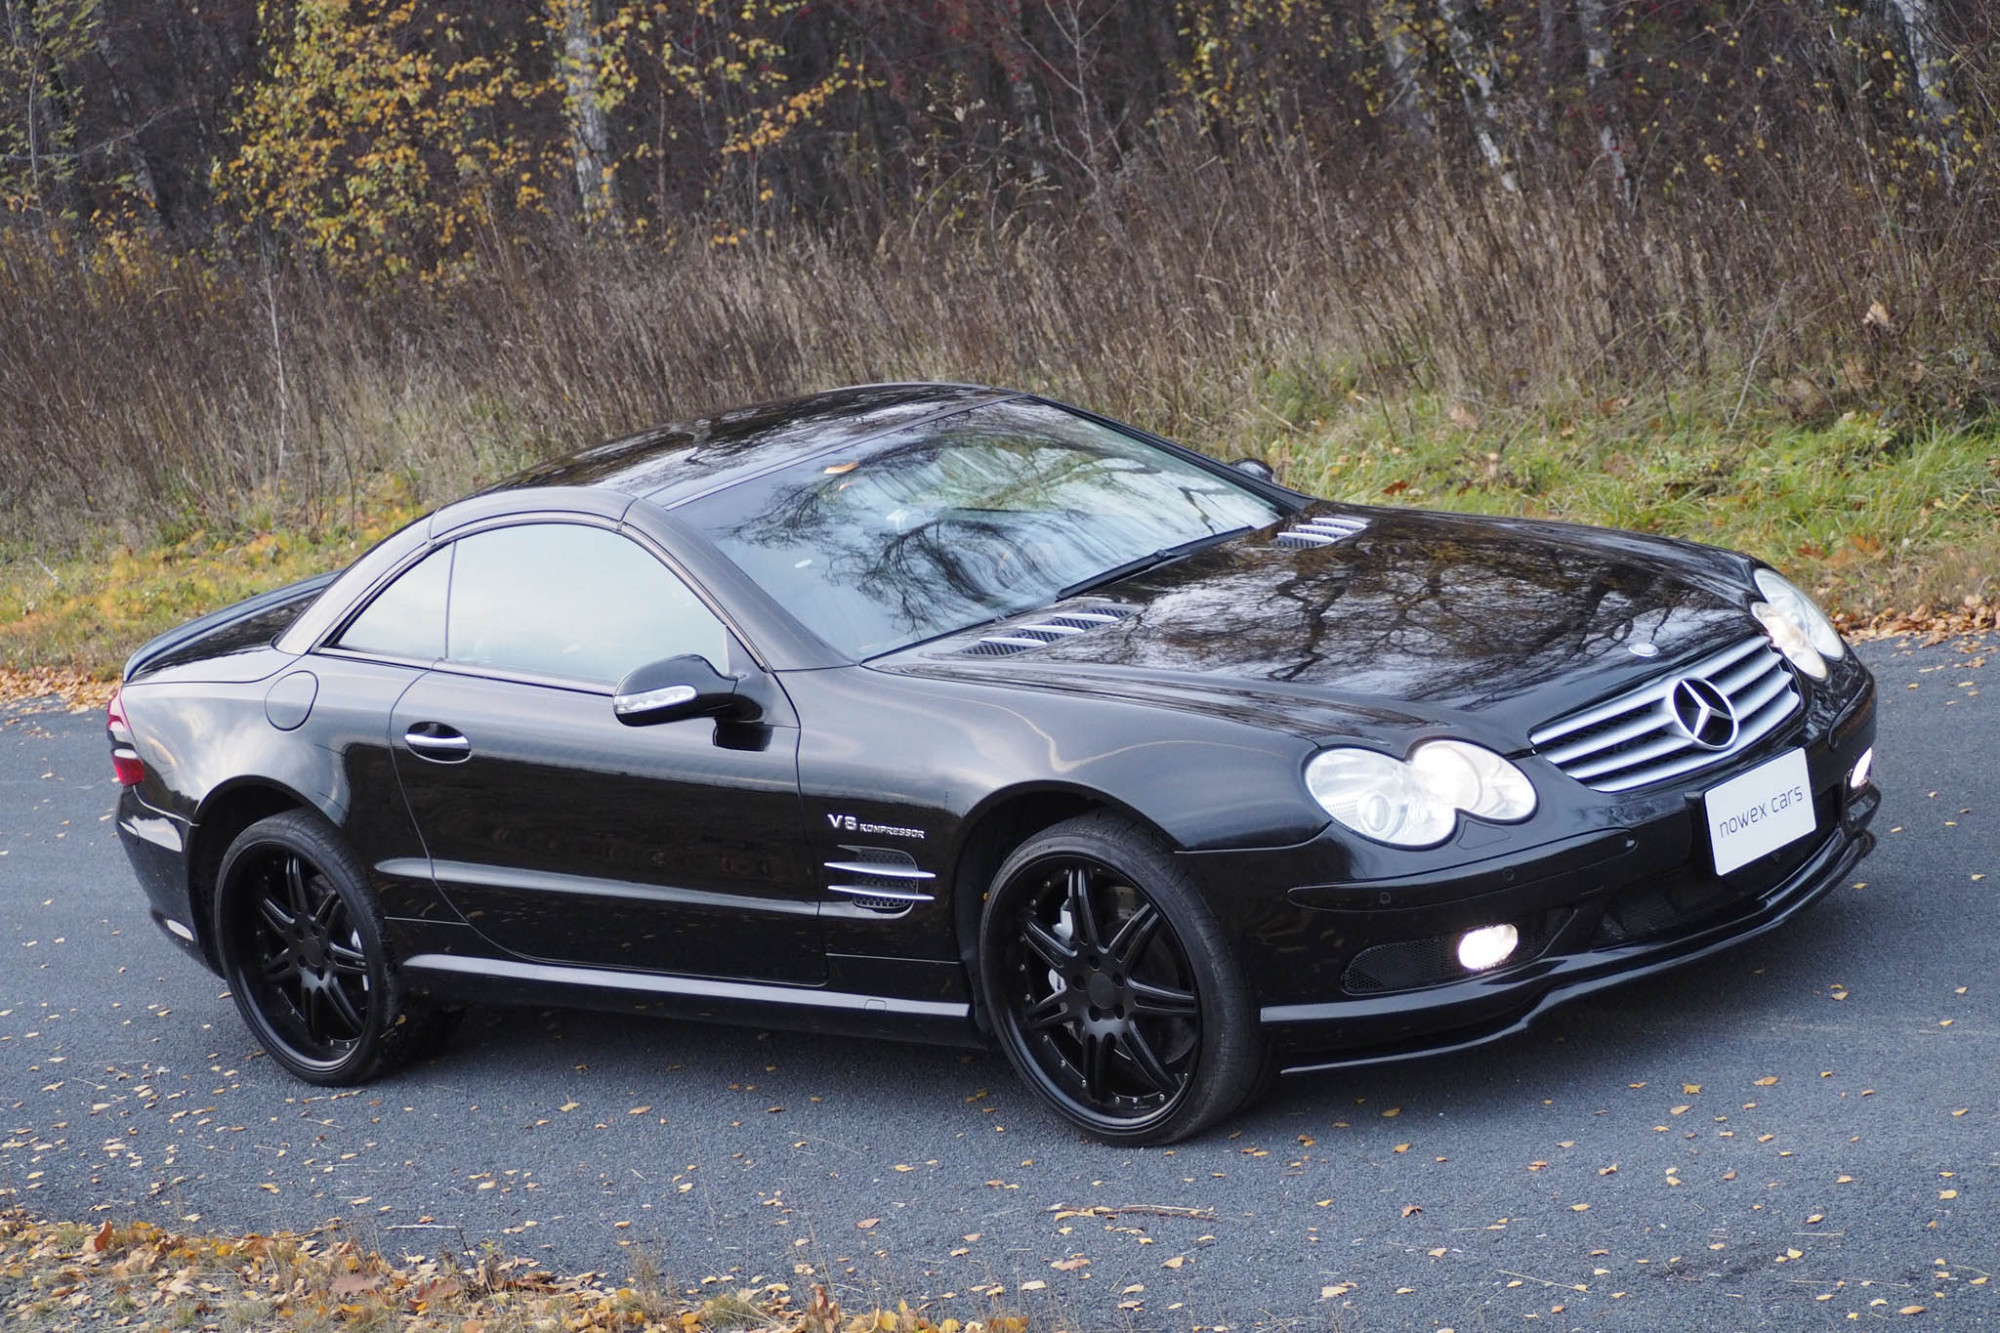 03 mercedes benz sl 55 amg nowex cars for Mercedes benz sl500 amg